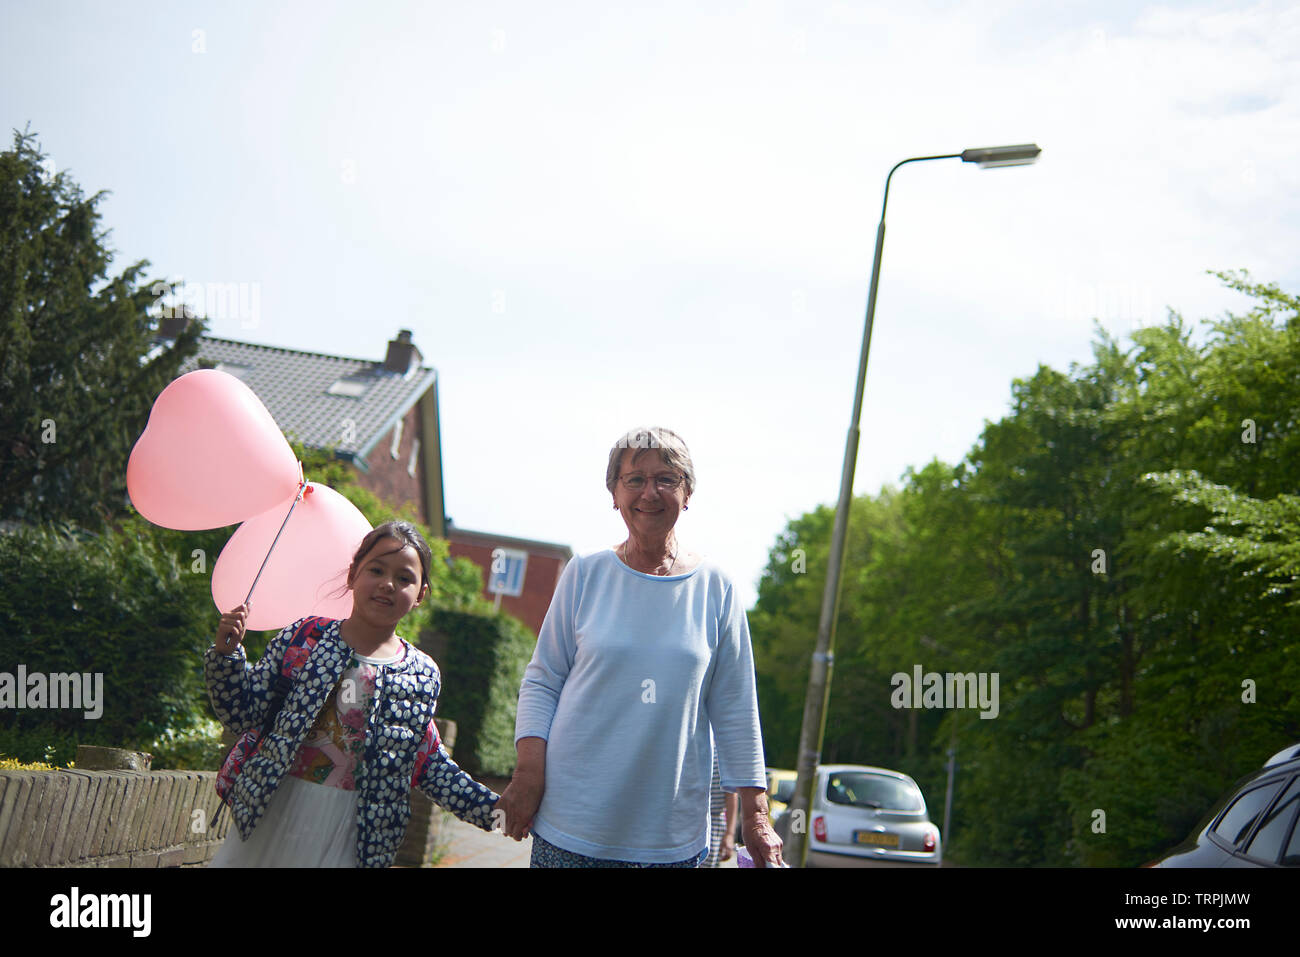 Grandmother walking down the street with their grand daughter who is holding a large heart shaped balloon on her birthday - Stock Image